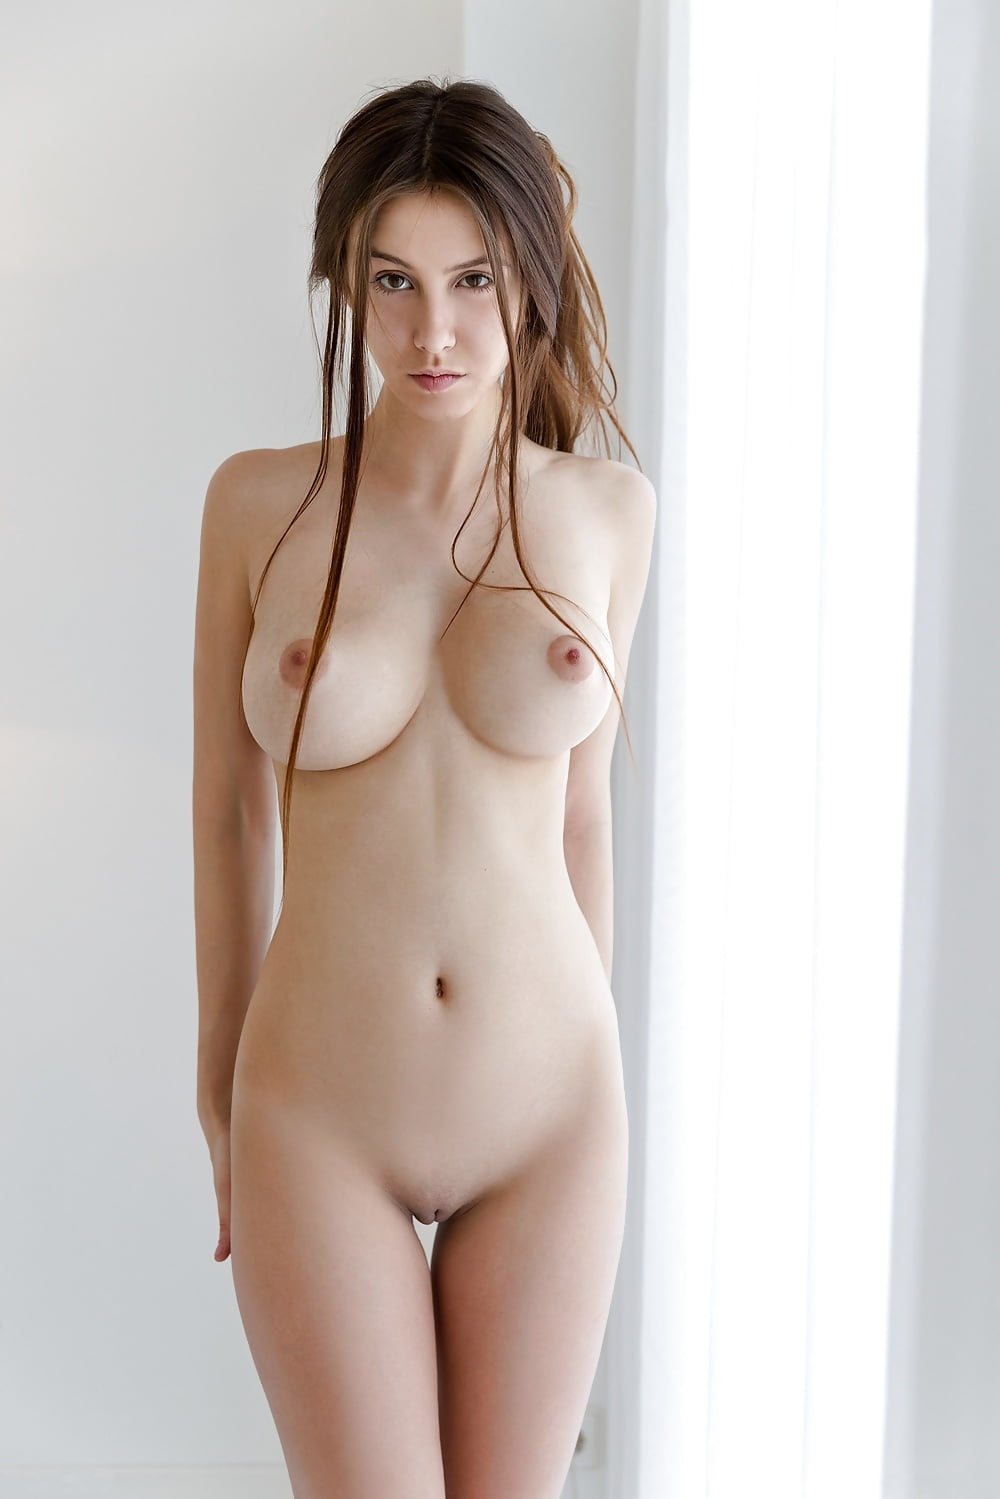 simply-nude-and-naked-girl